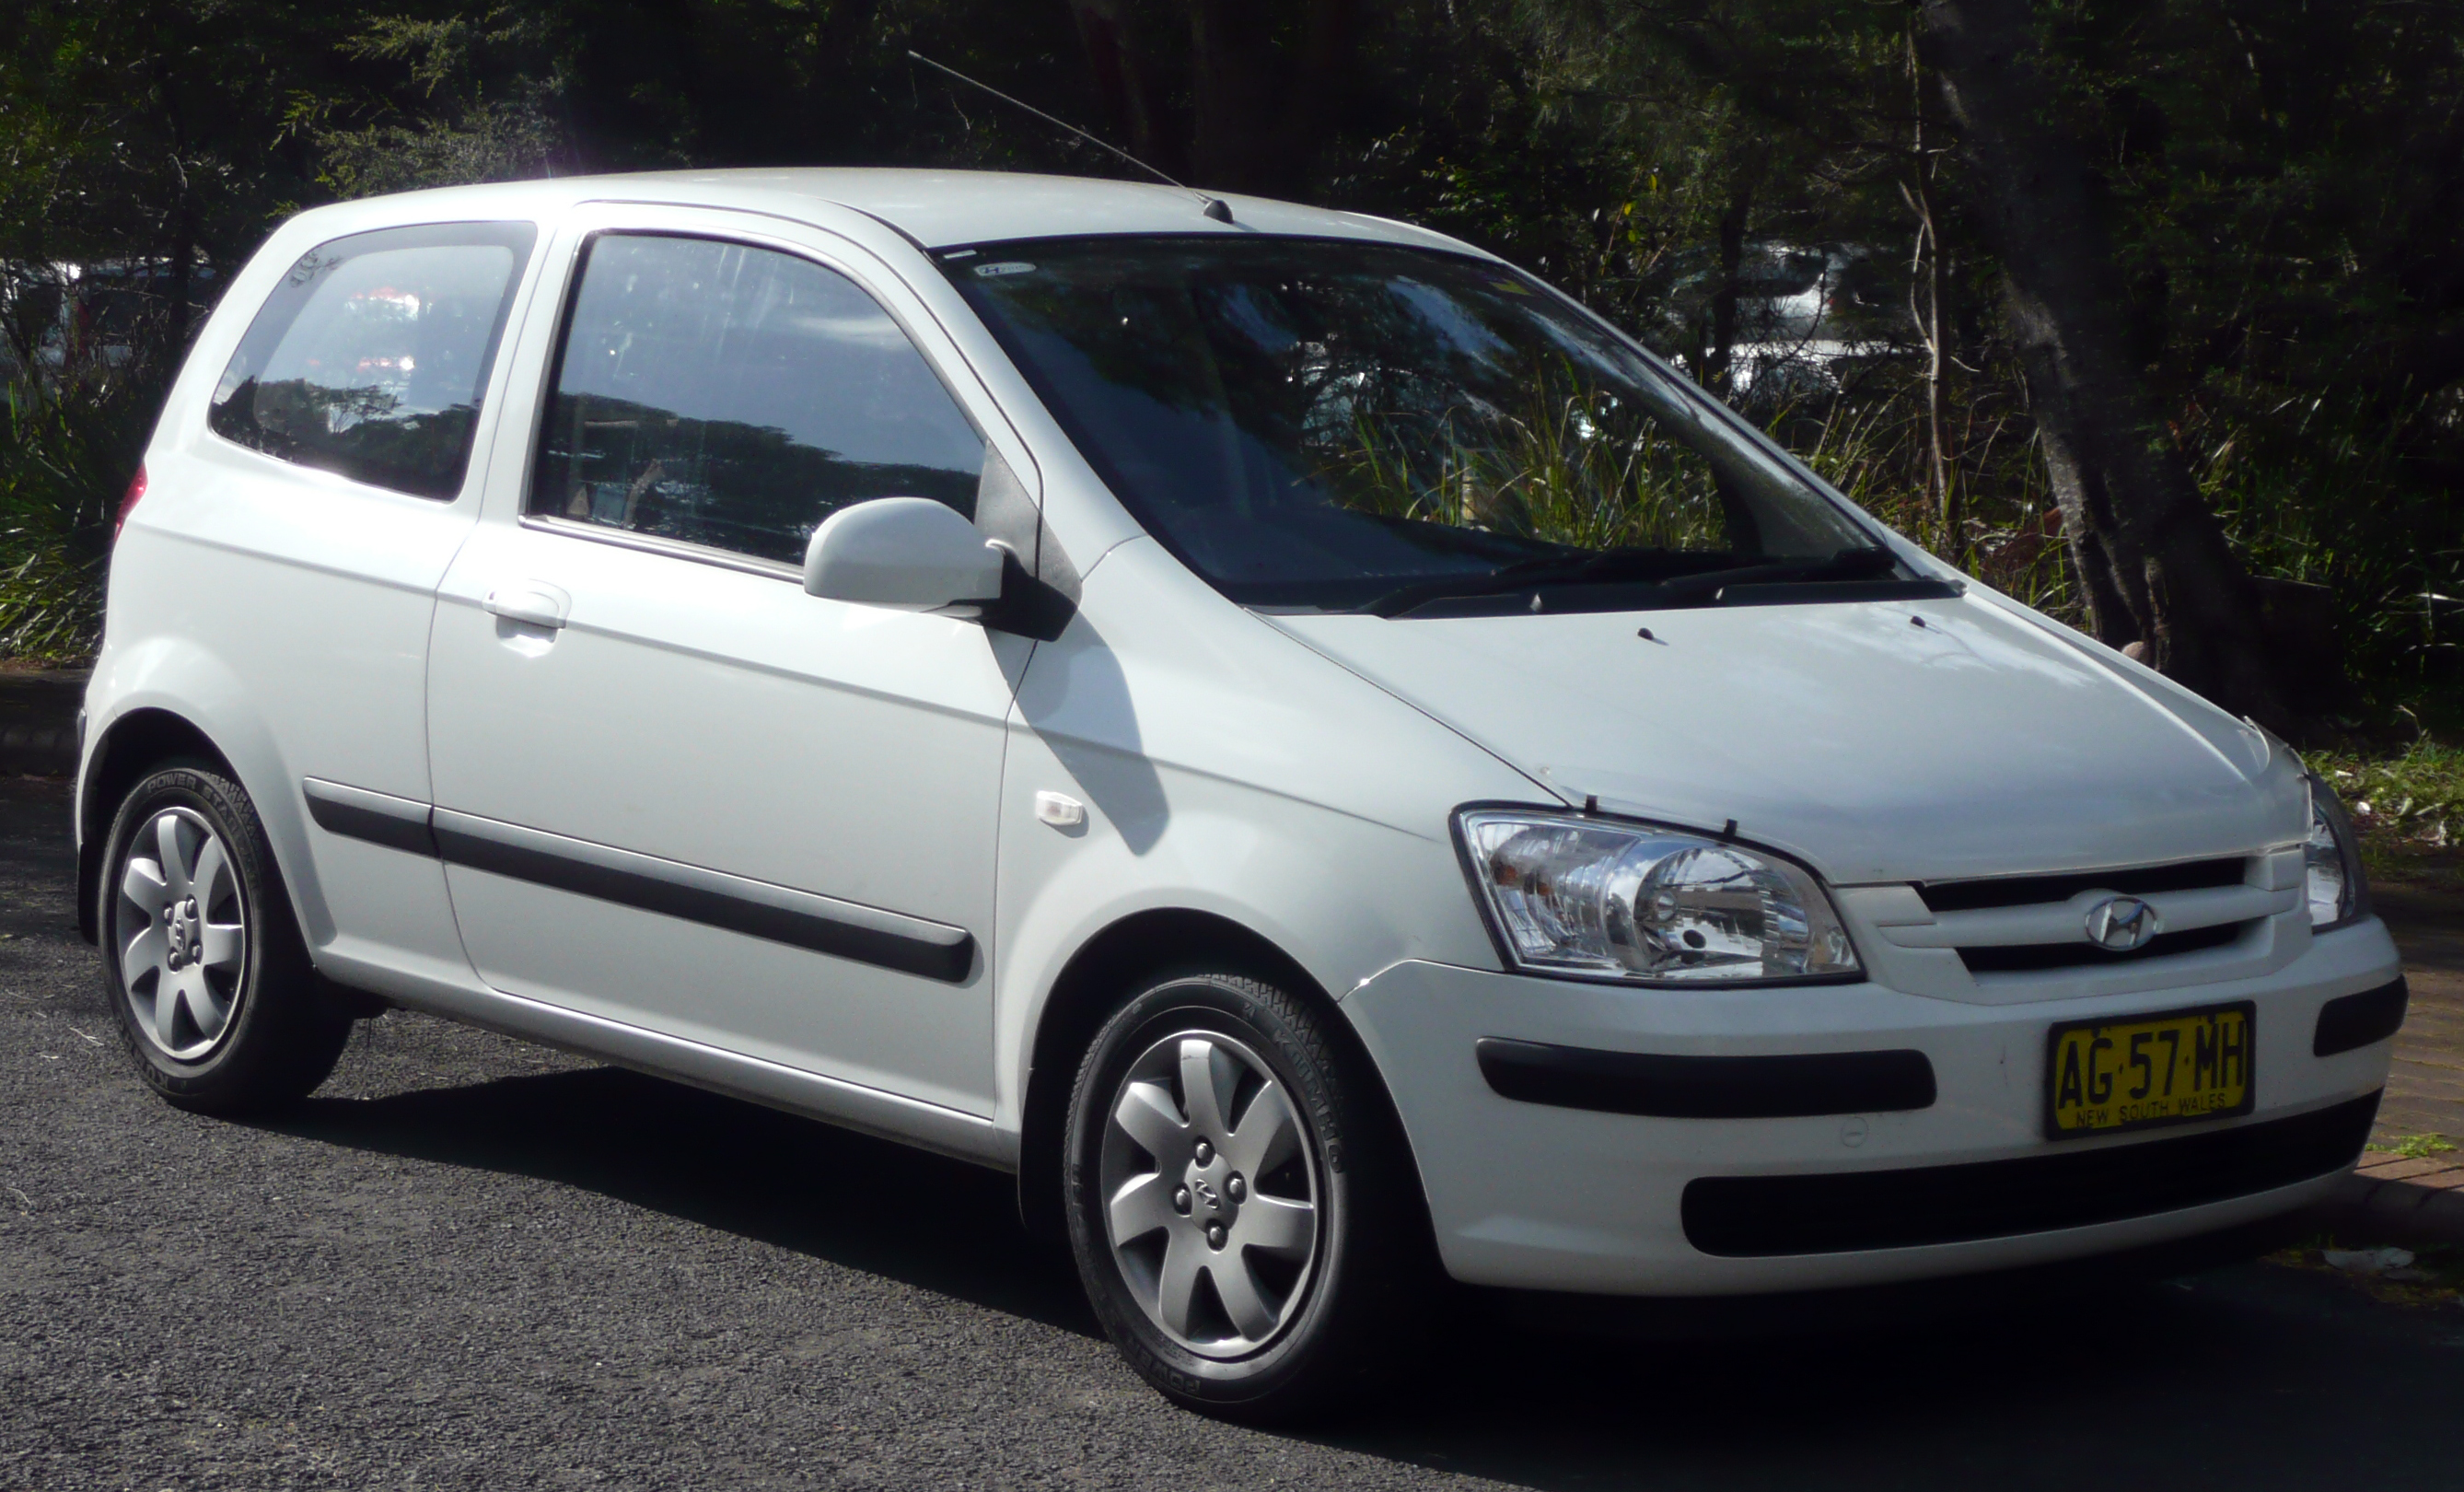 File:2003-2005 Hyundai Getz (TB) GL 3-door hatchback 01